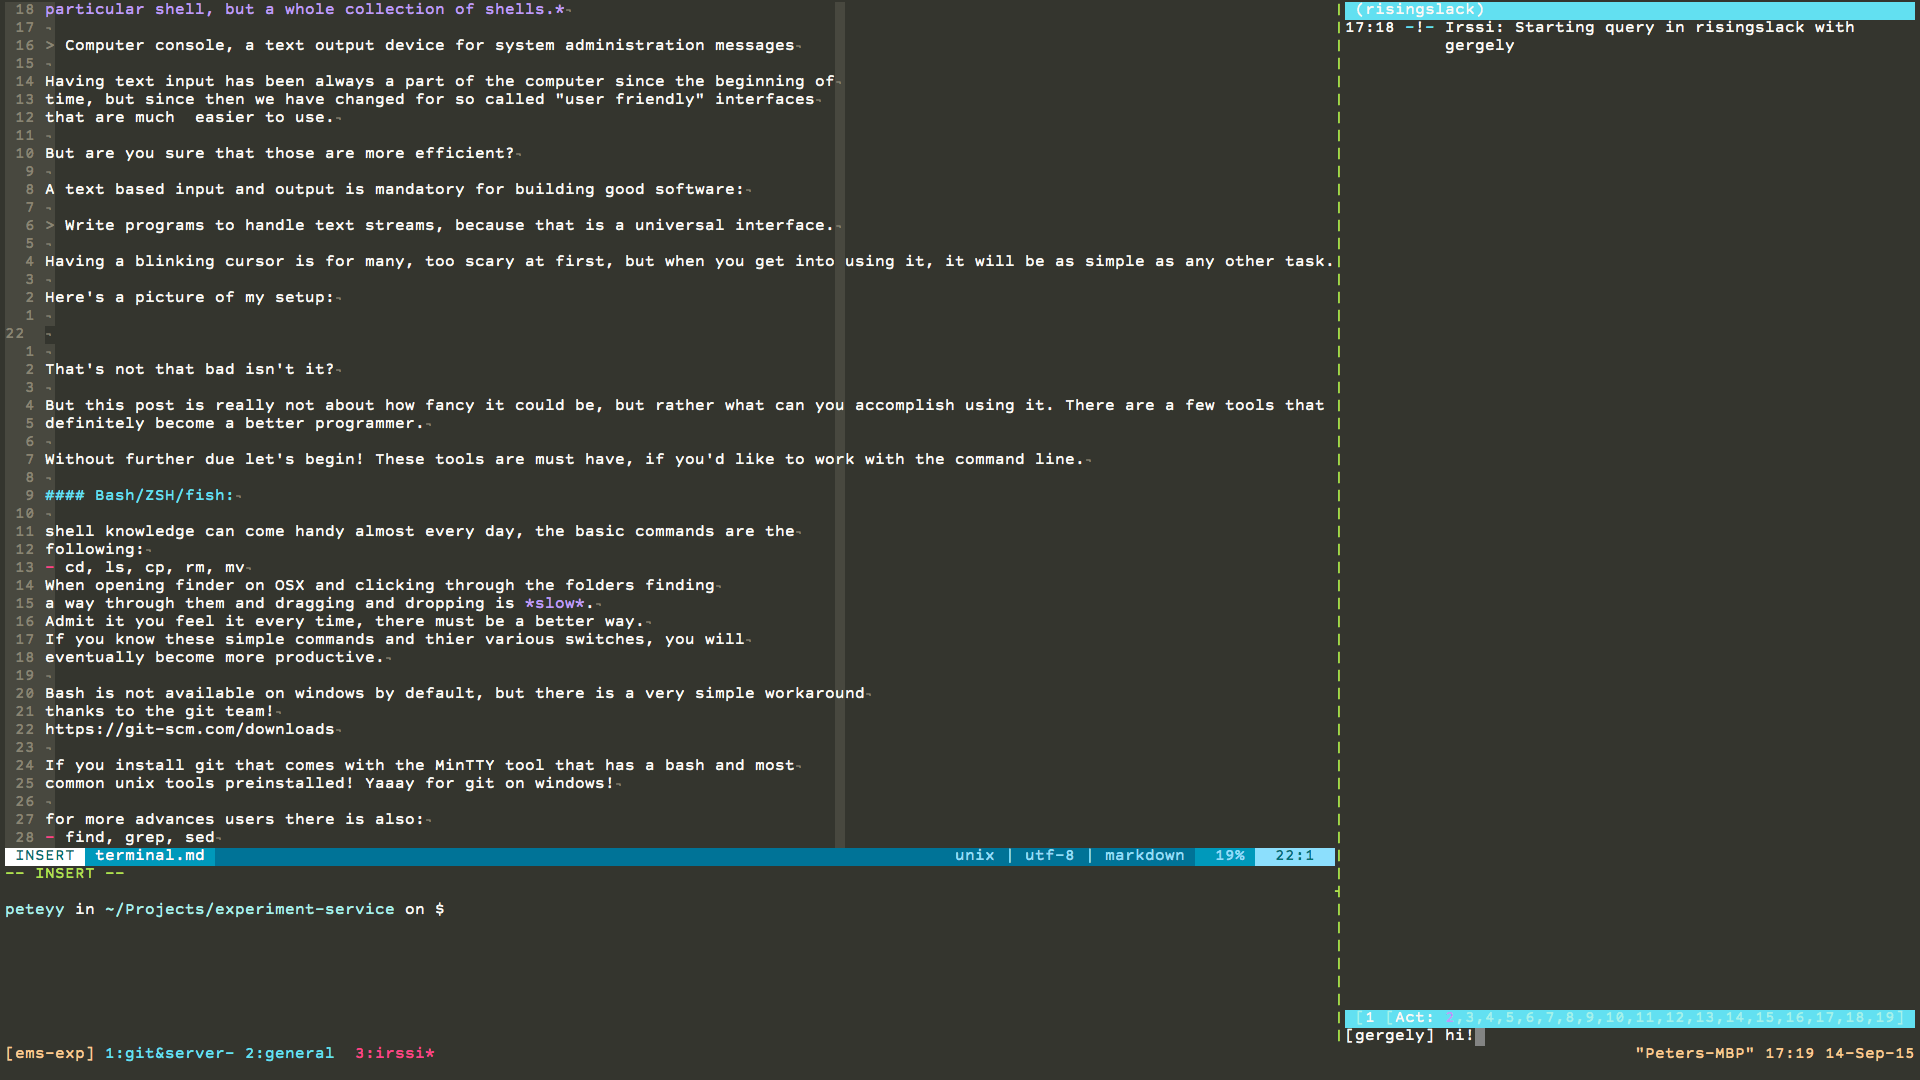 Peteyy's terminal setup for NodeJS development